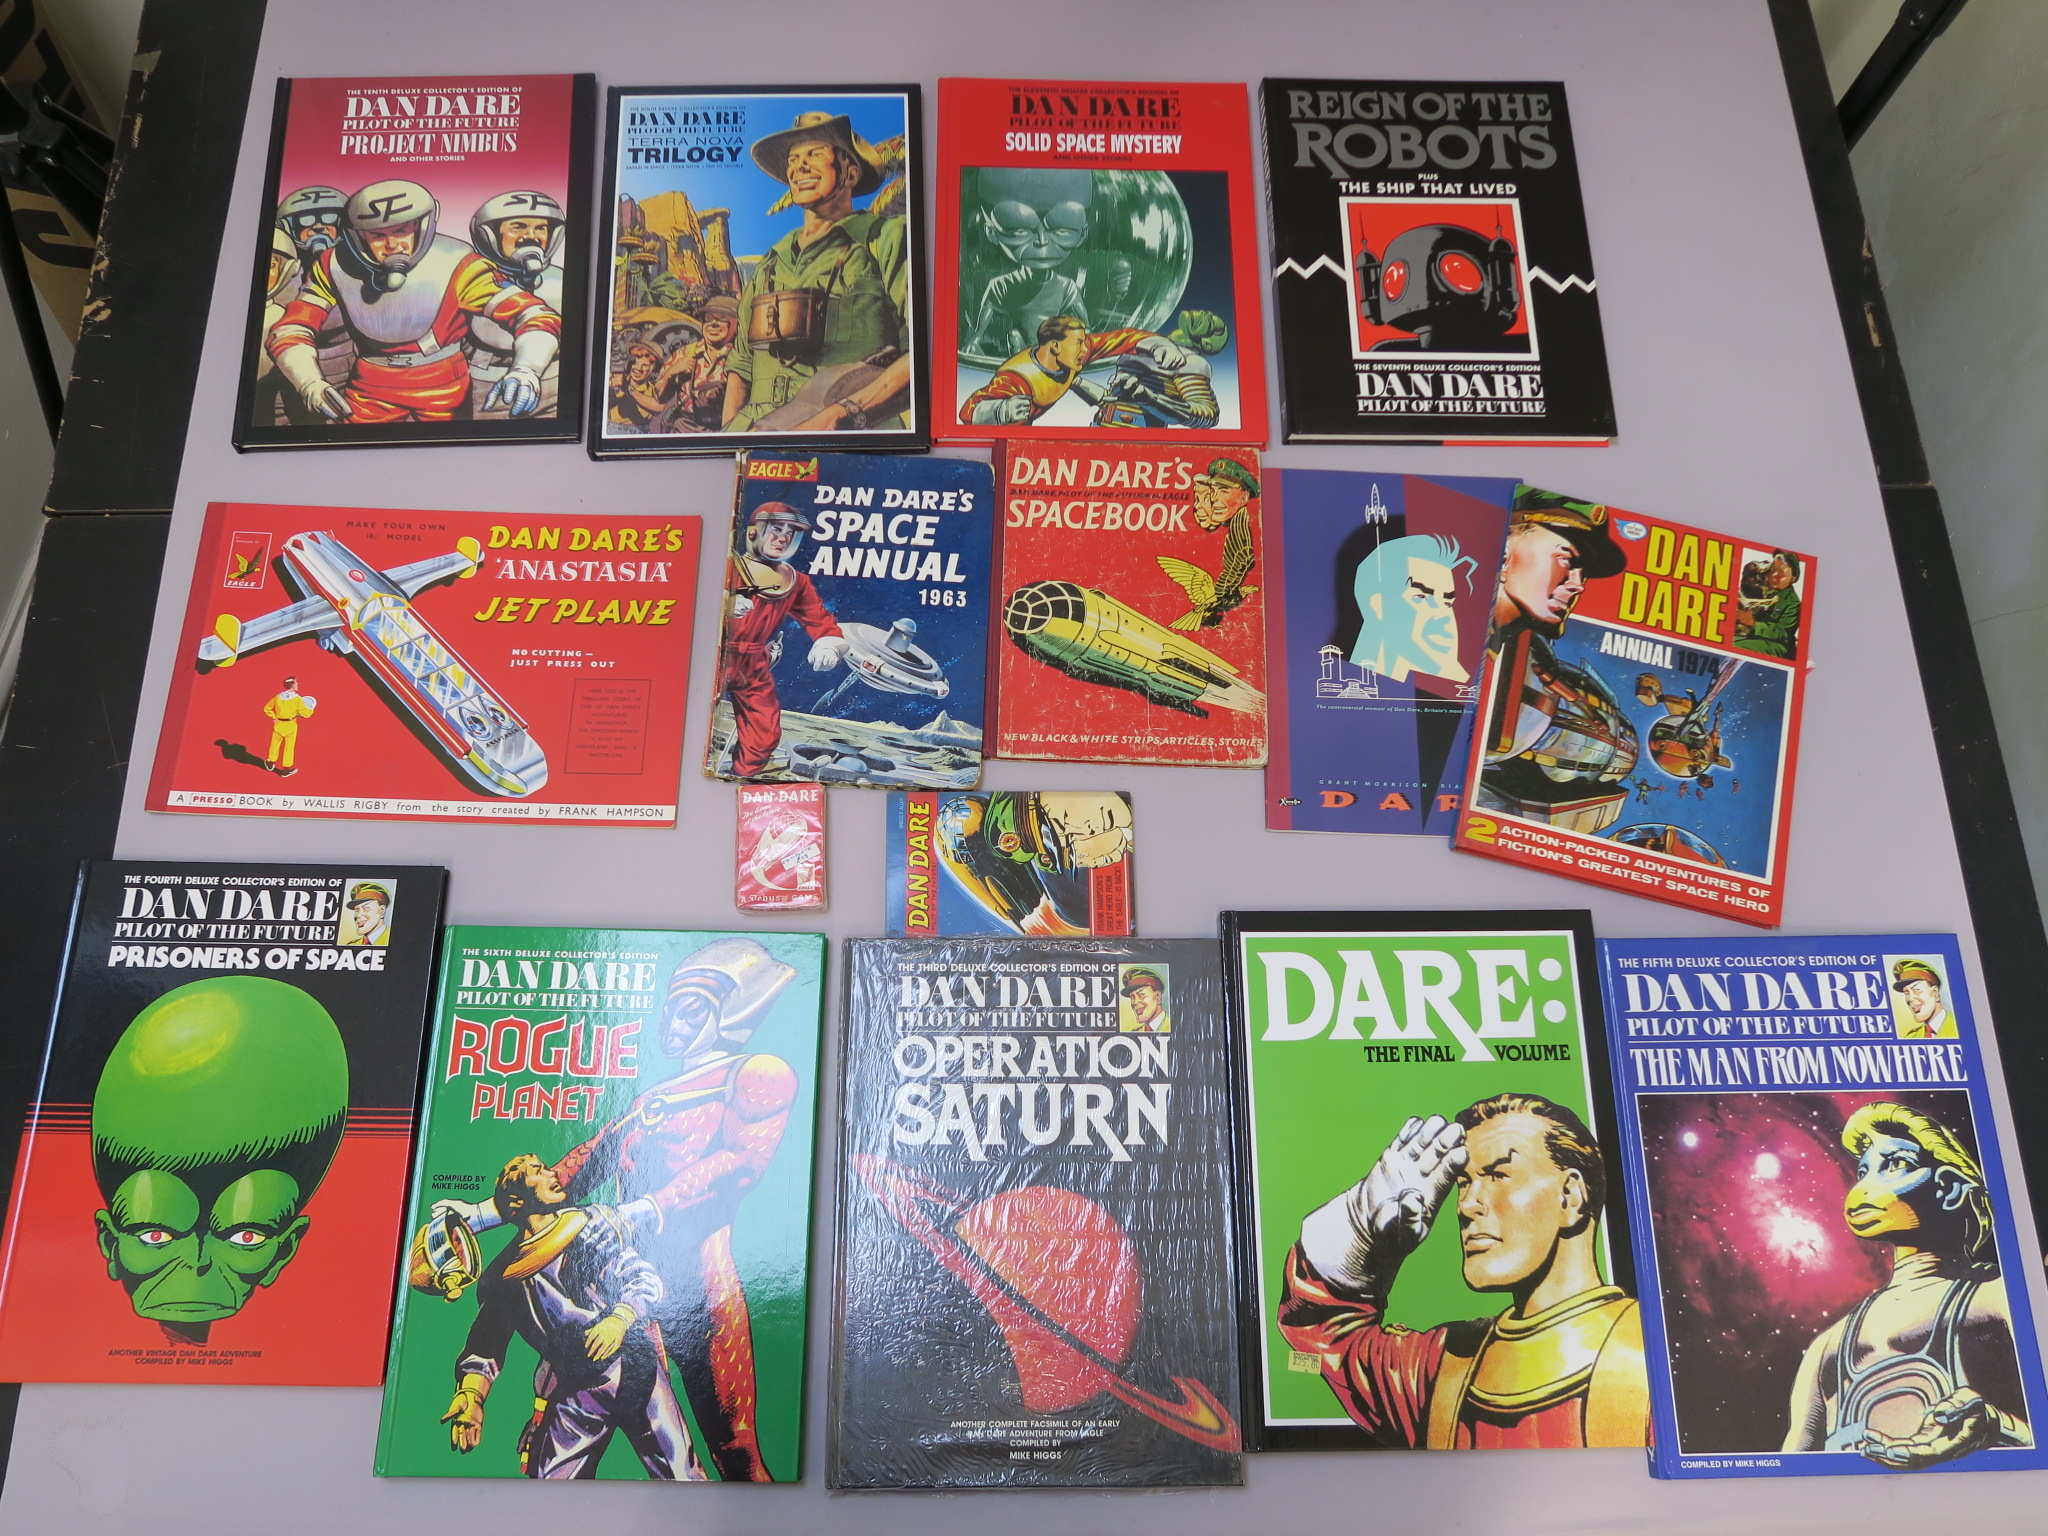 Lot 42 - Dan Dare large collection including many deluxe collectors edition hardback Dan Dare books with